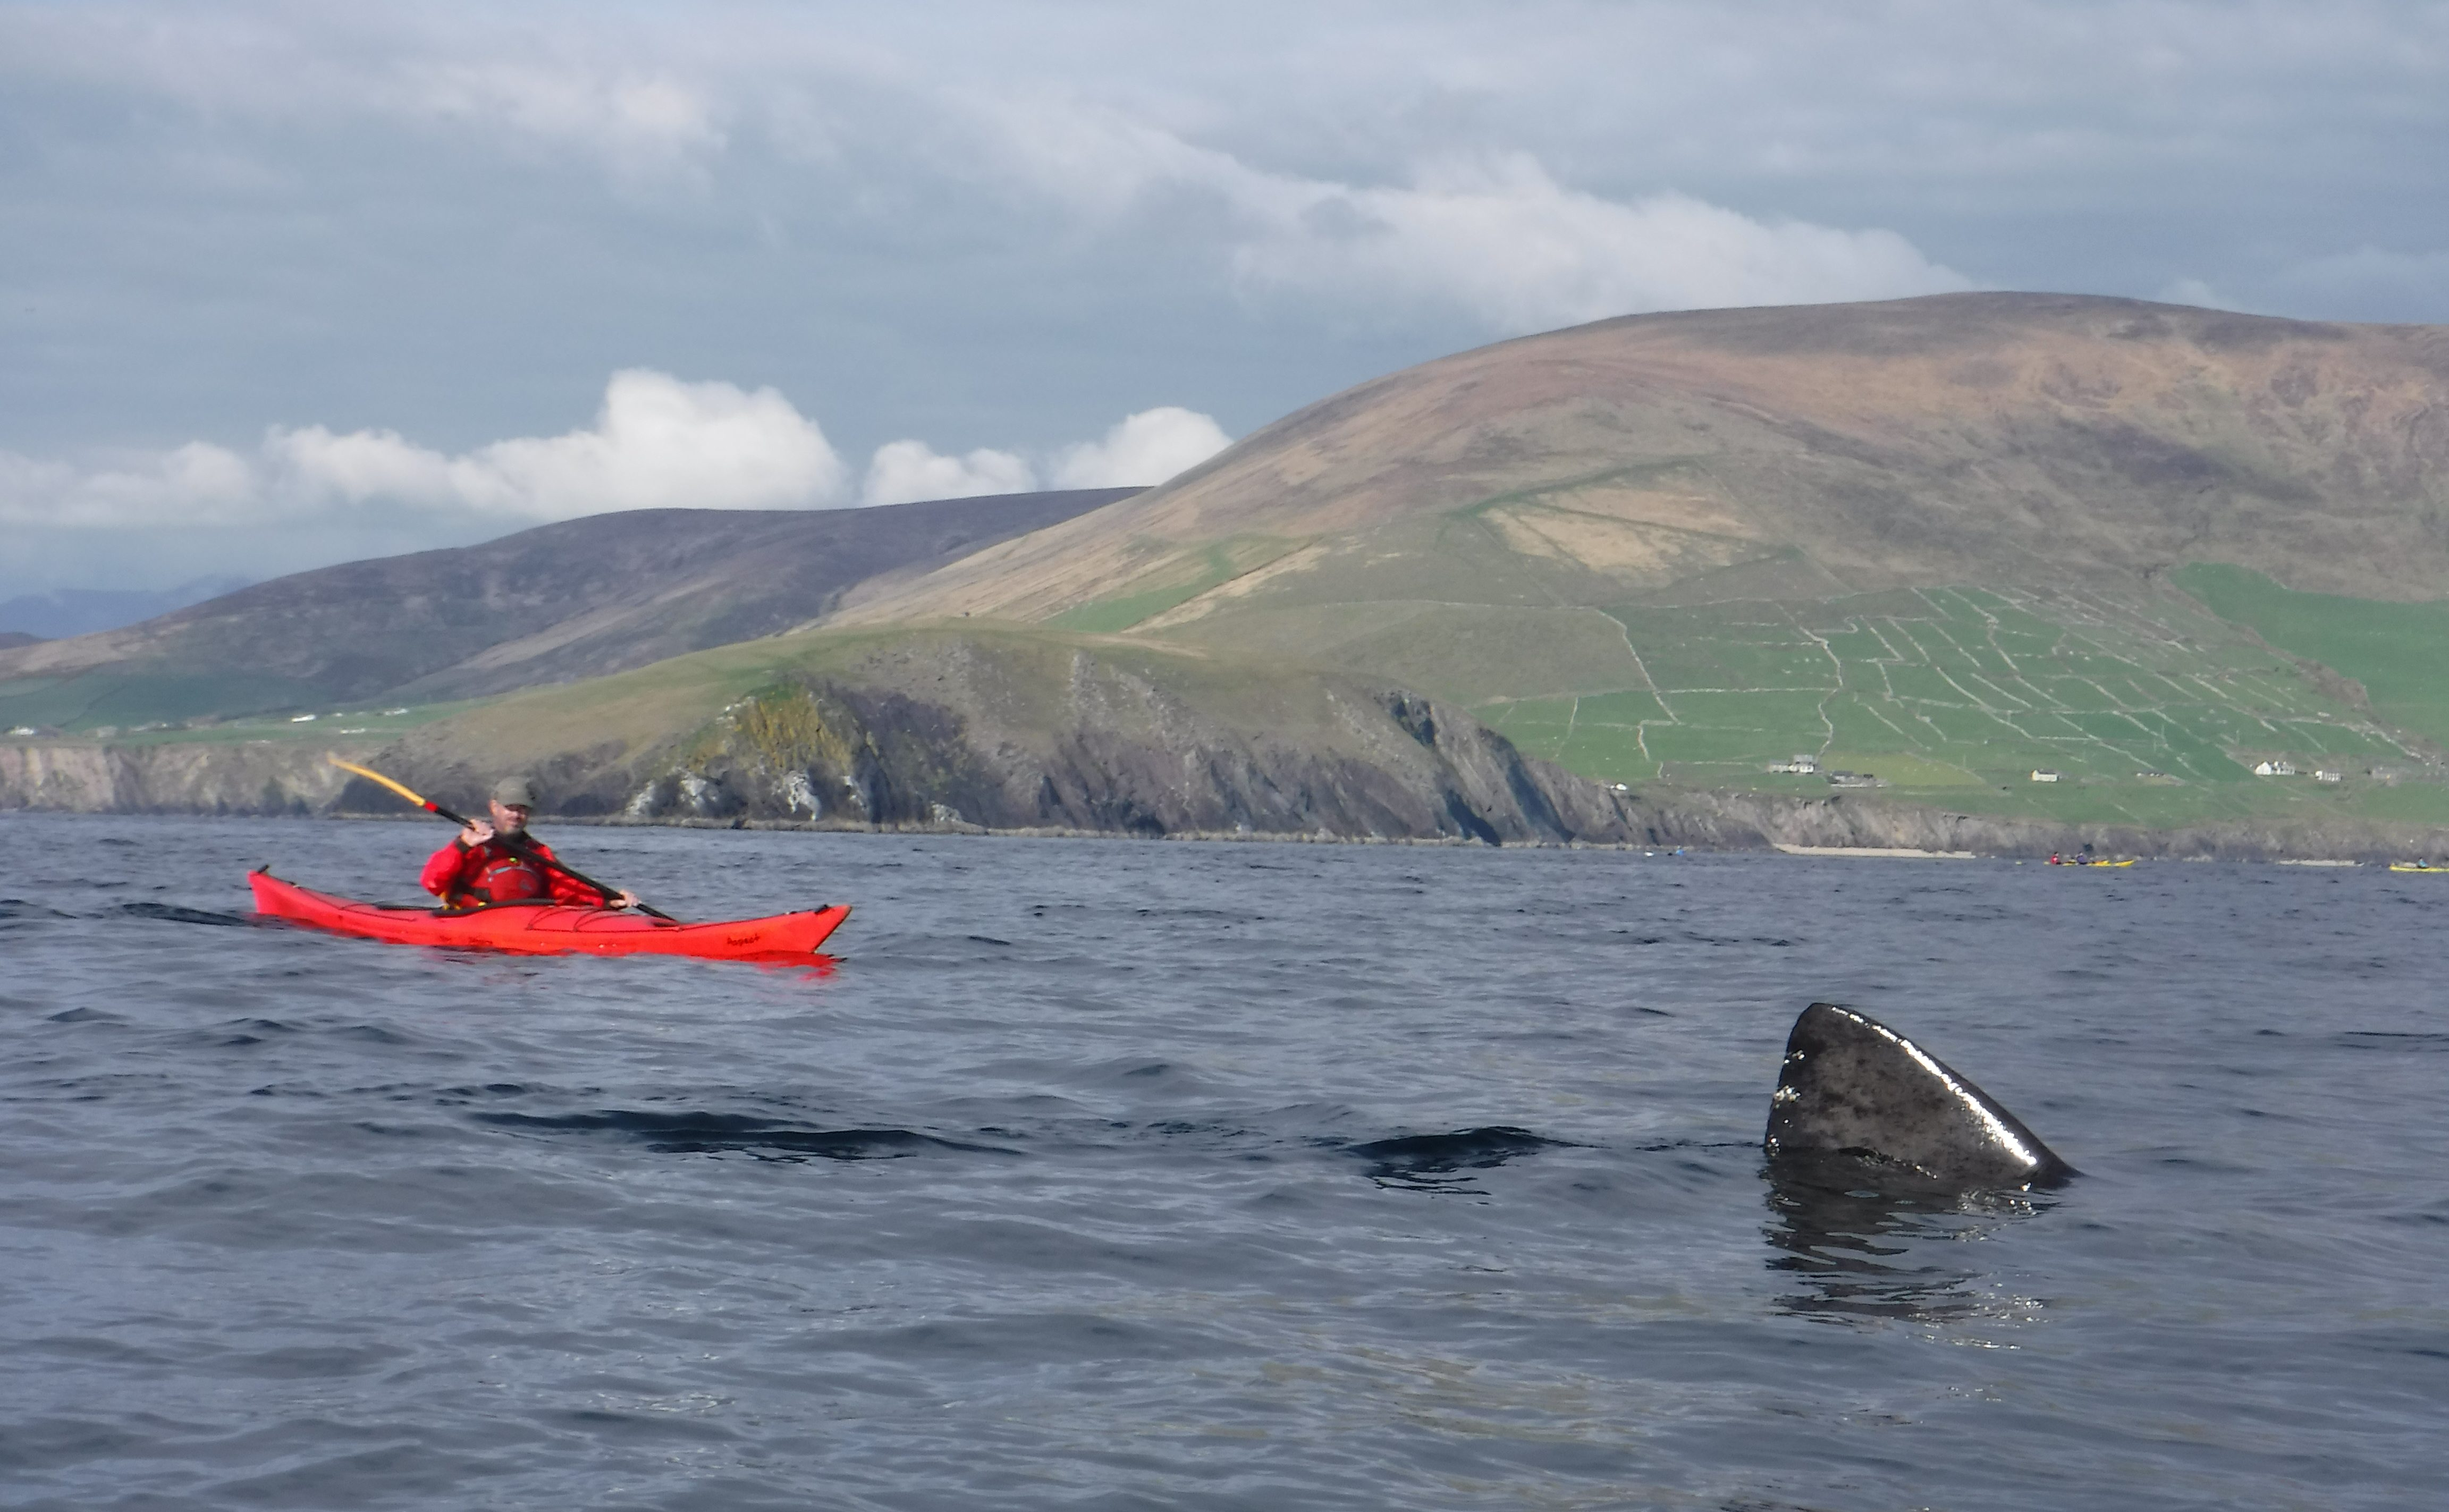 Kayakers came across a school of basking sharks near the Blasket Islands in Kerry. Image: Irish Adventures